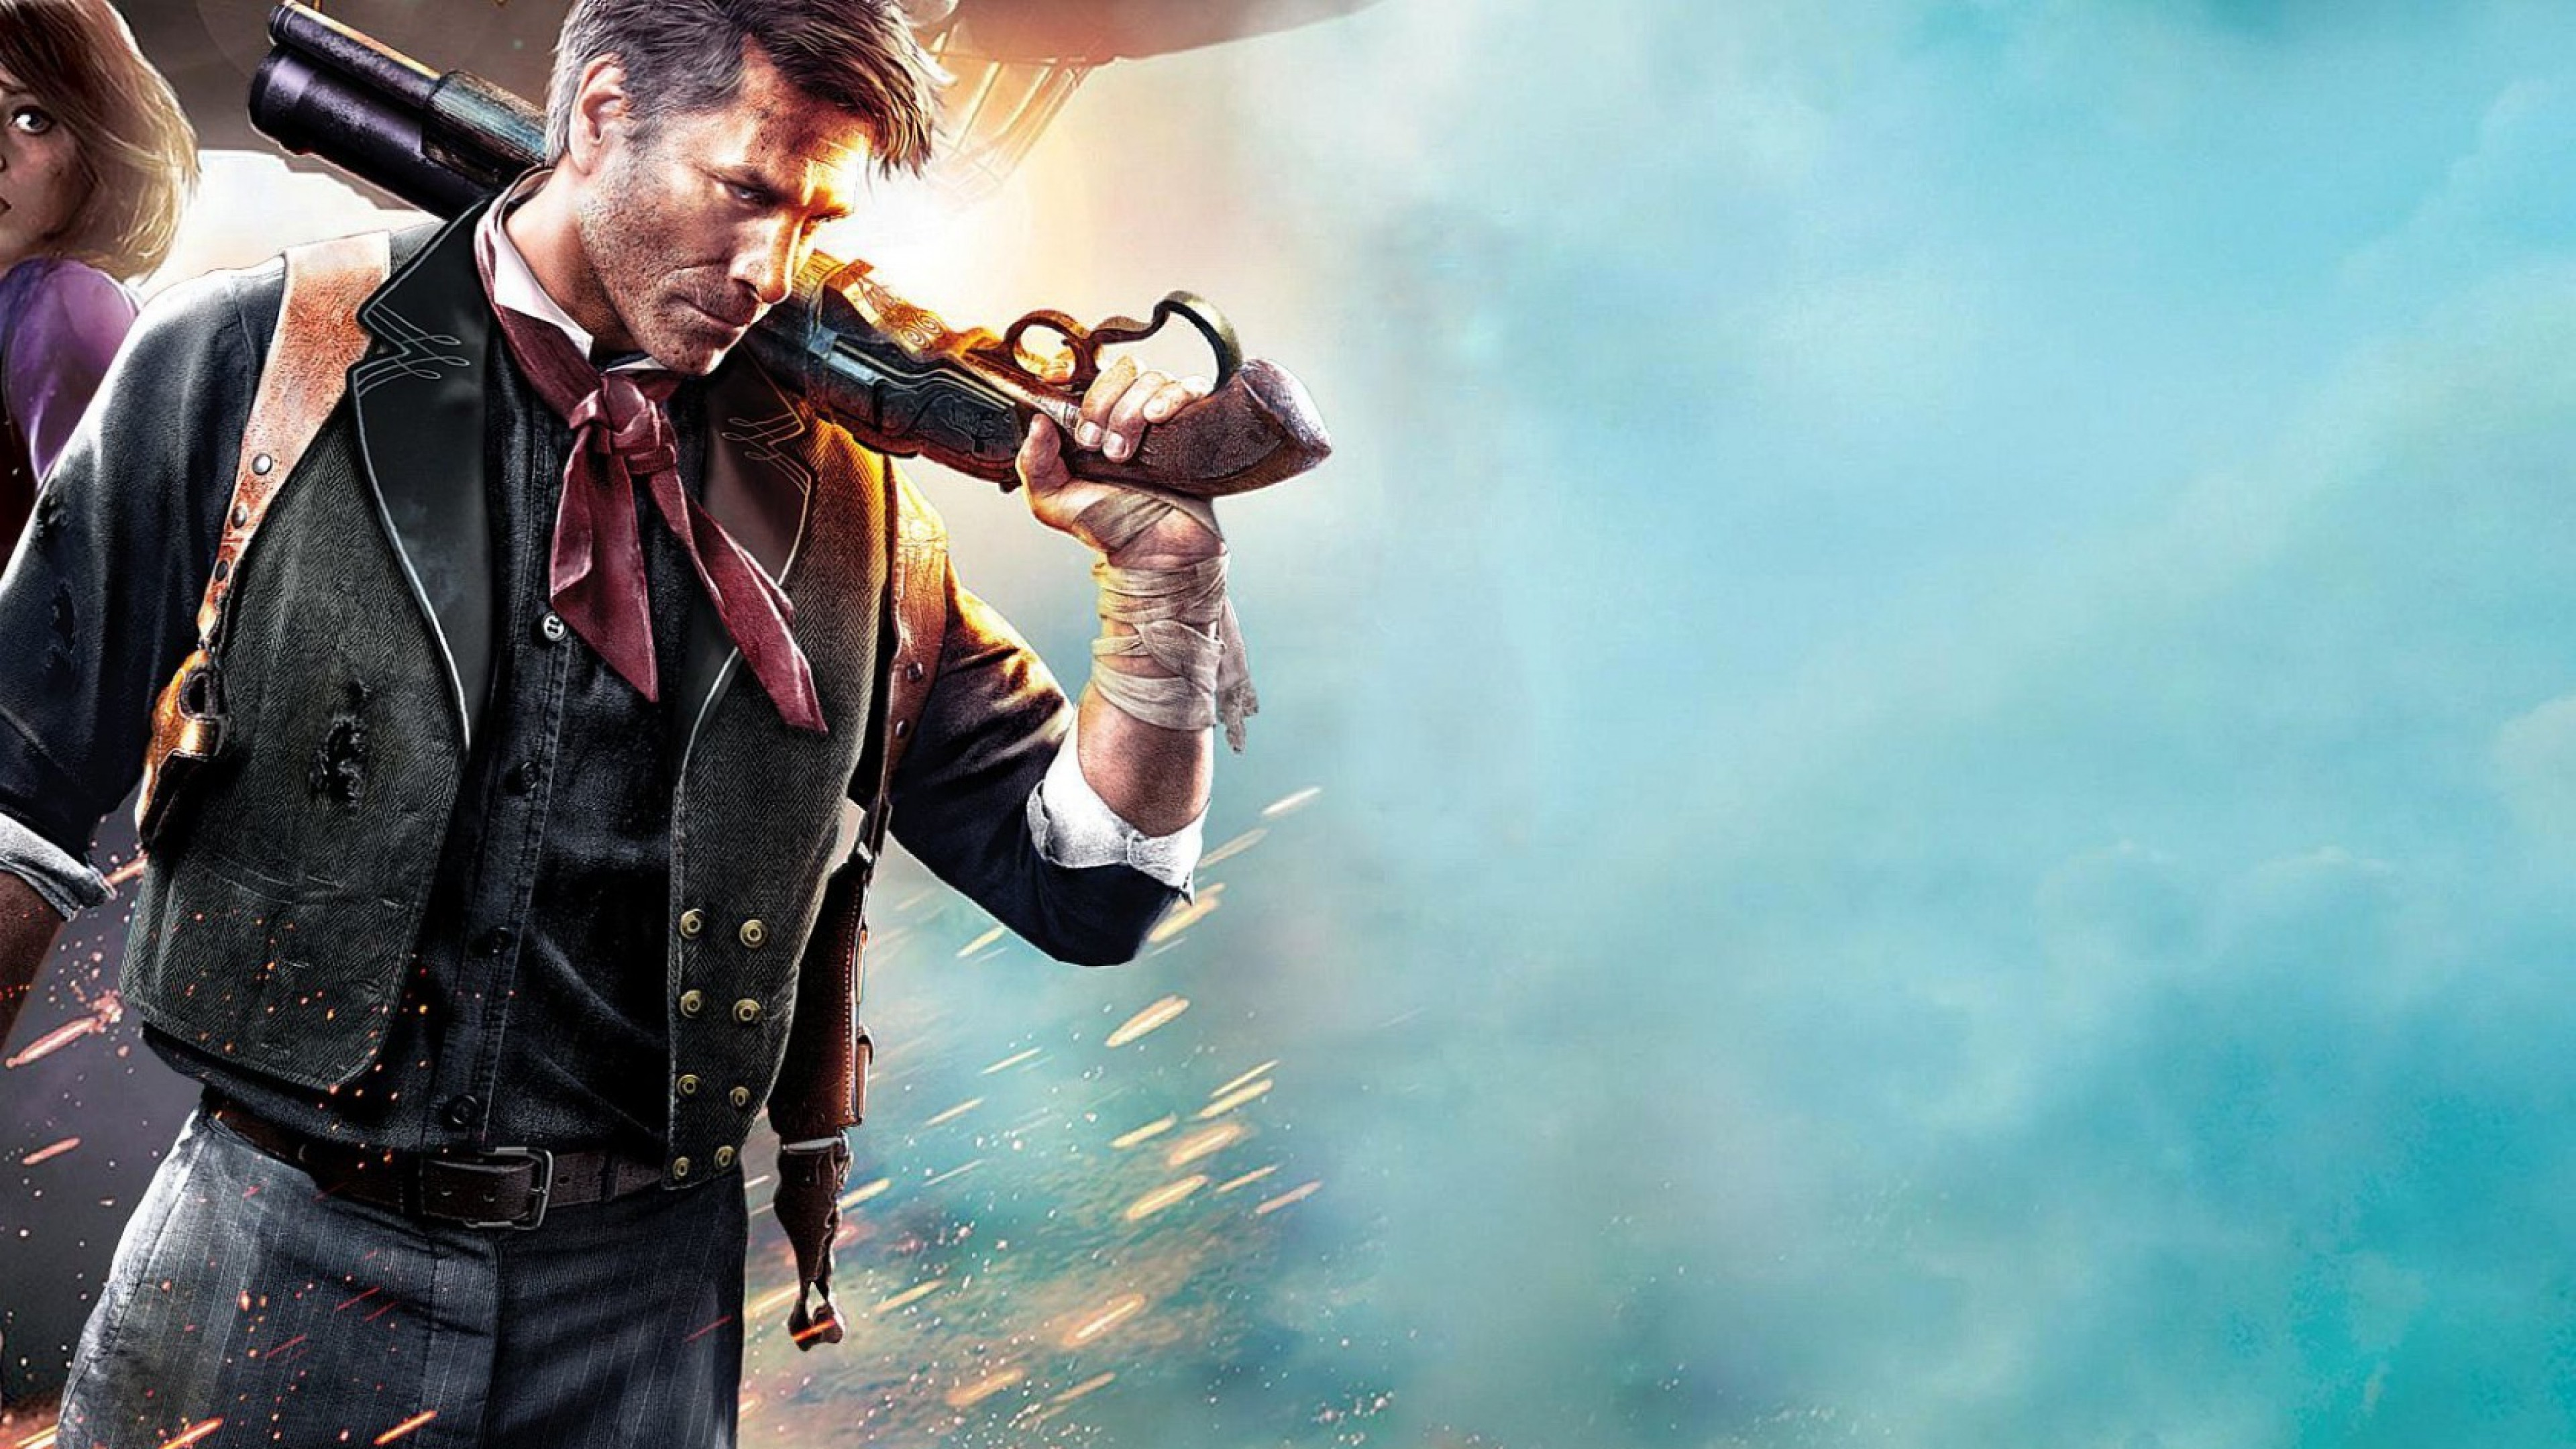 2016 bioshock infinite game, hd games, 4k wallpapers, images